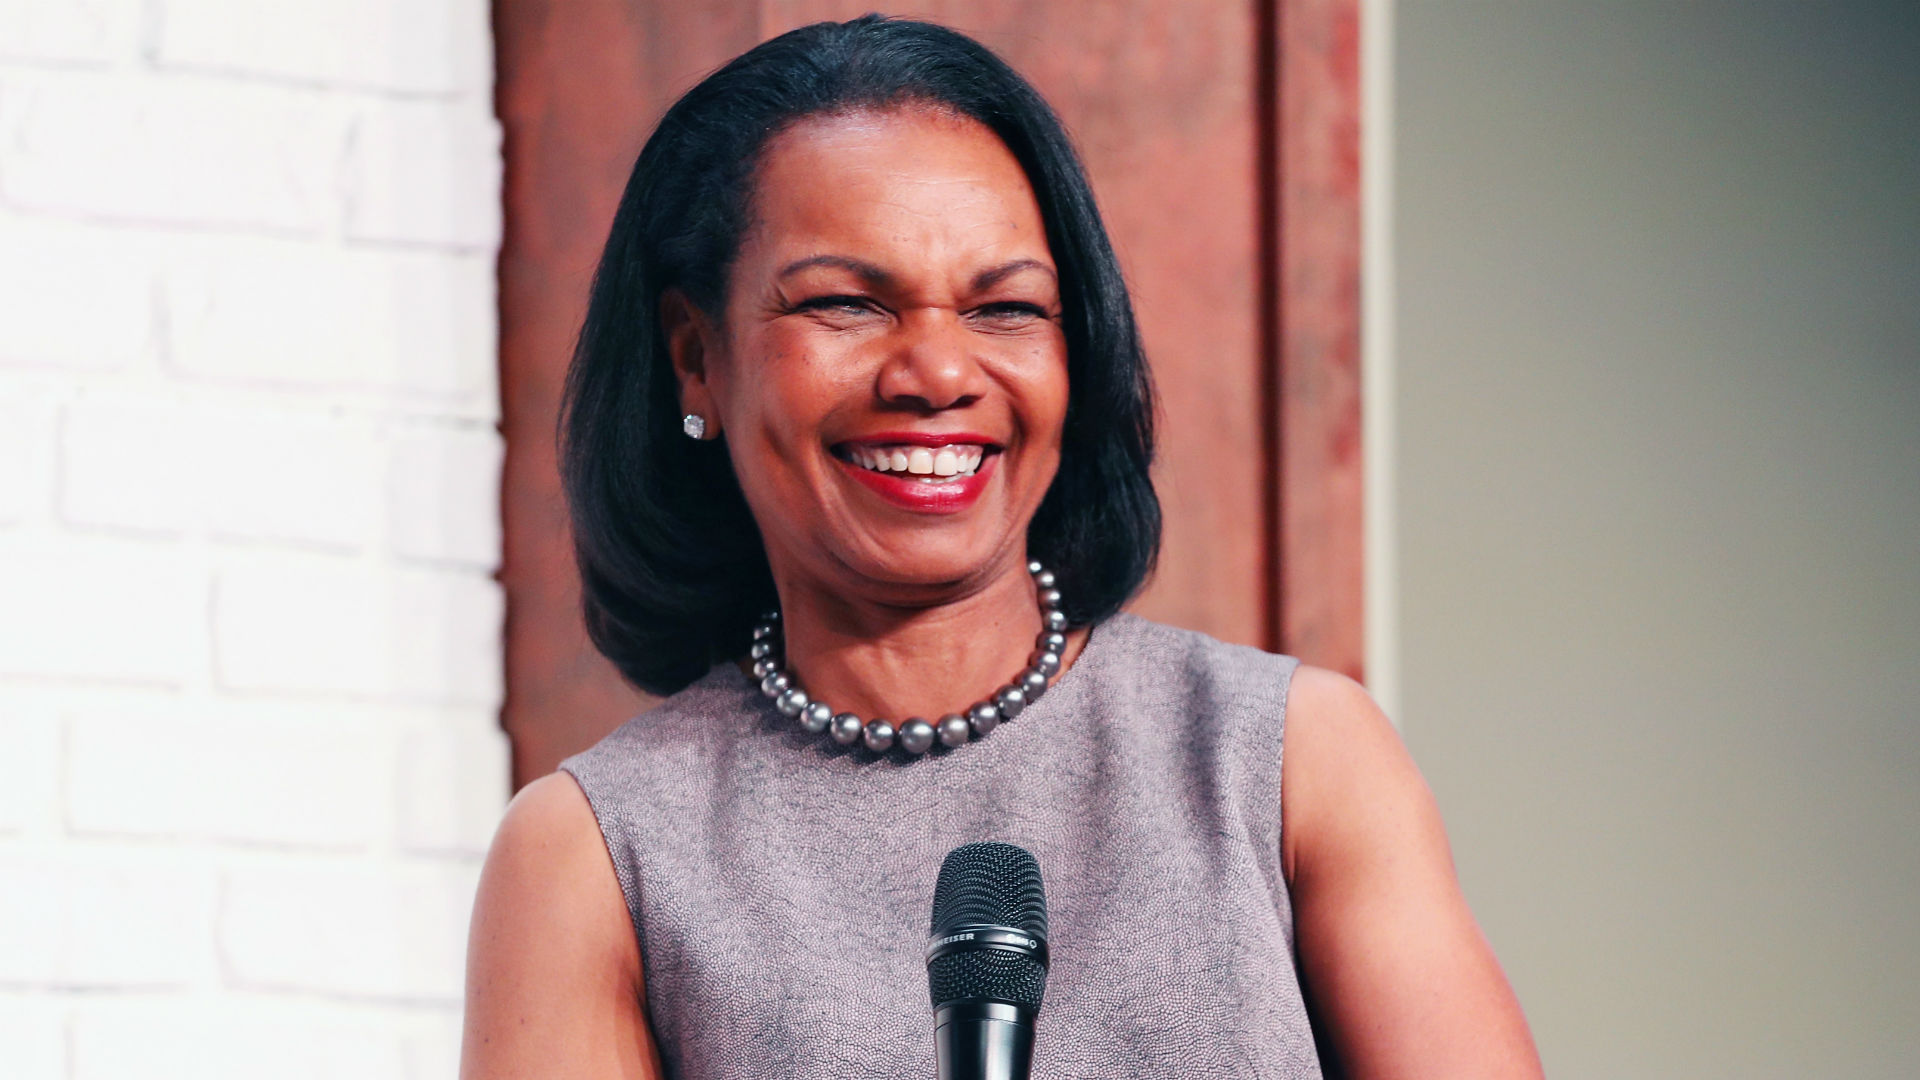 Browns' interest in Condoleezza Rice shouldn't be limited to head-coaching role